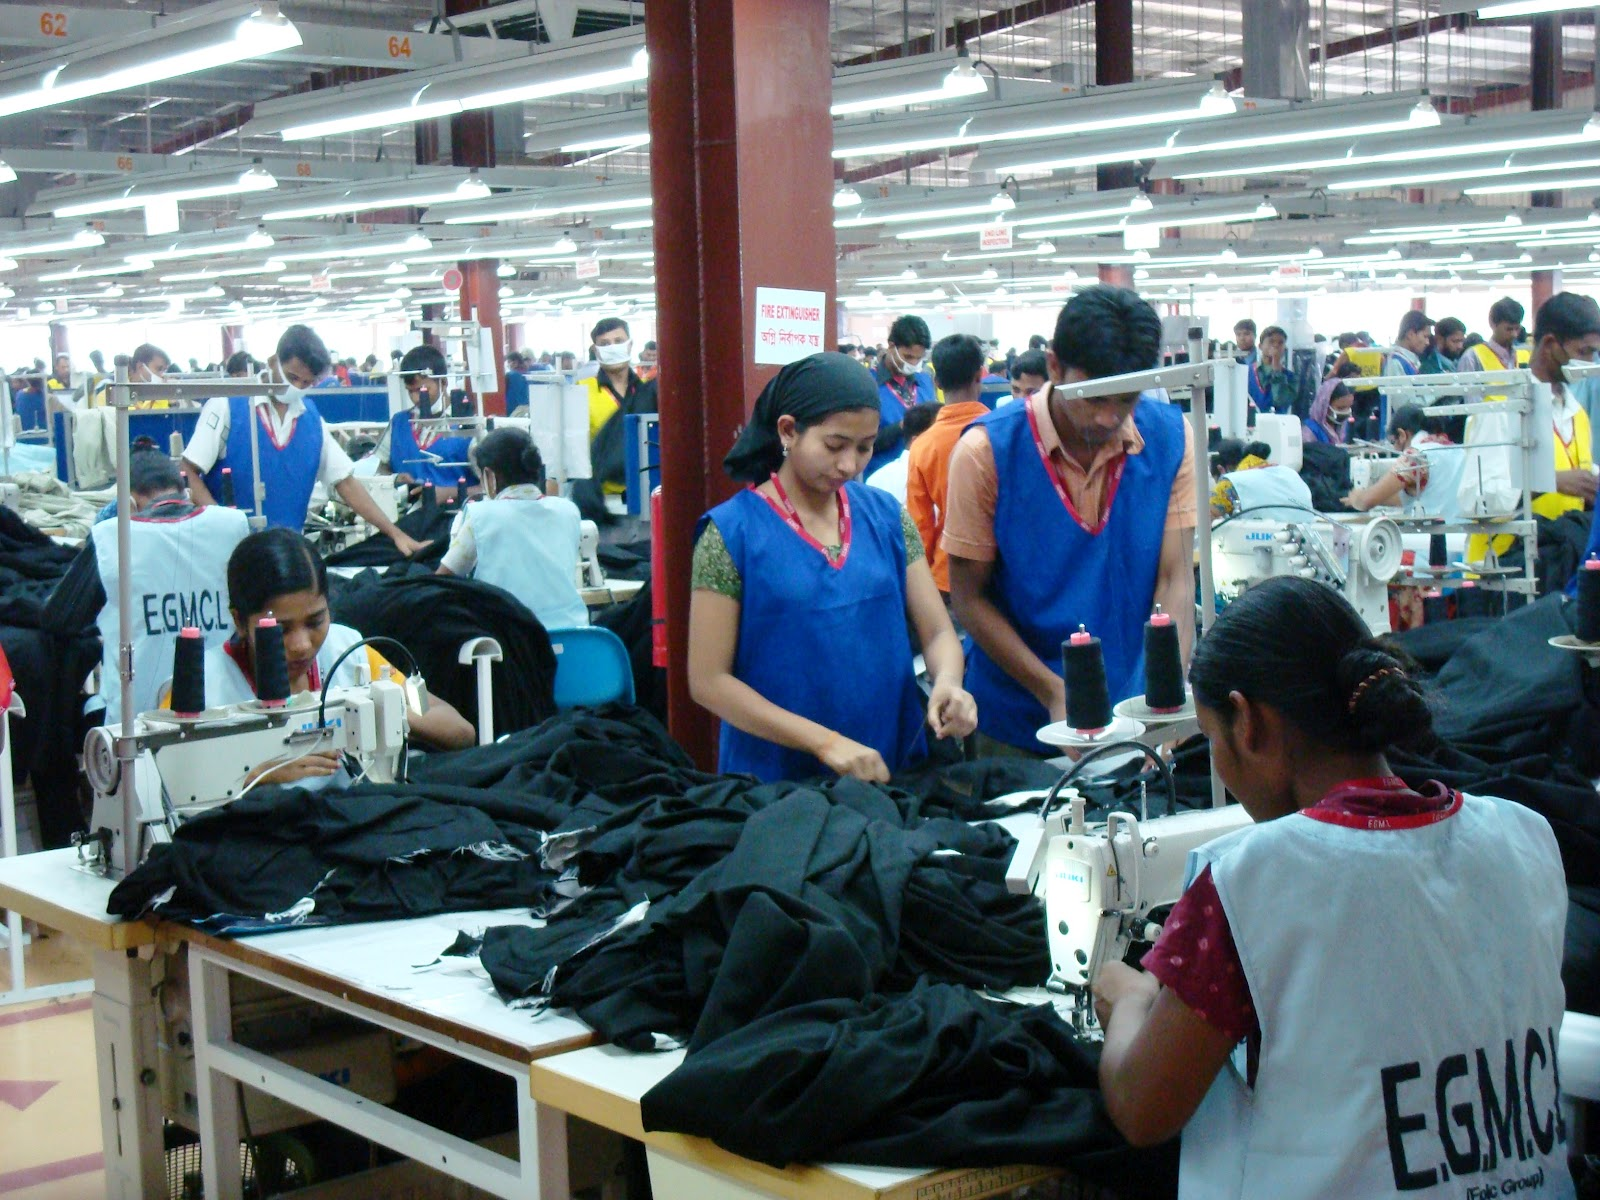 prospect of new a garments factory in bangladesh (dhaka) – garment workers in bangladesh face poor working conditions and anti-union tactics by employers including assaults on union organizers, human rights watch.